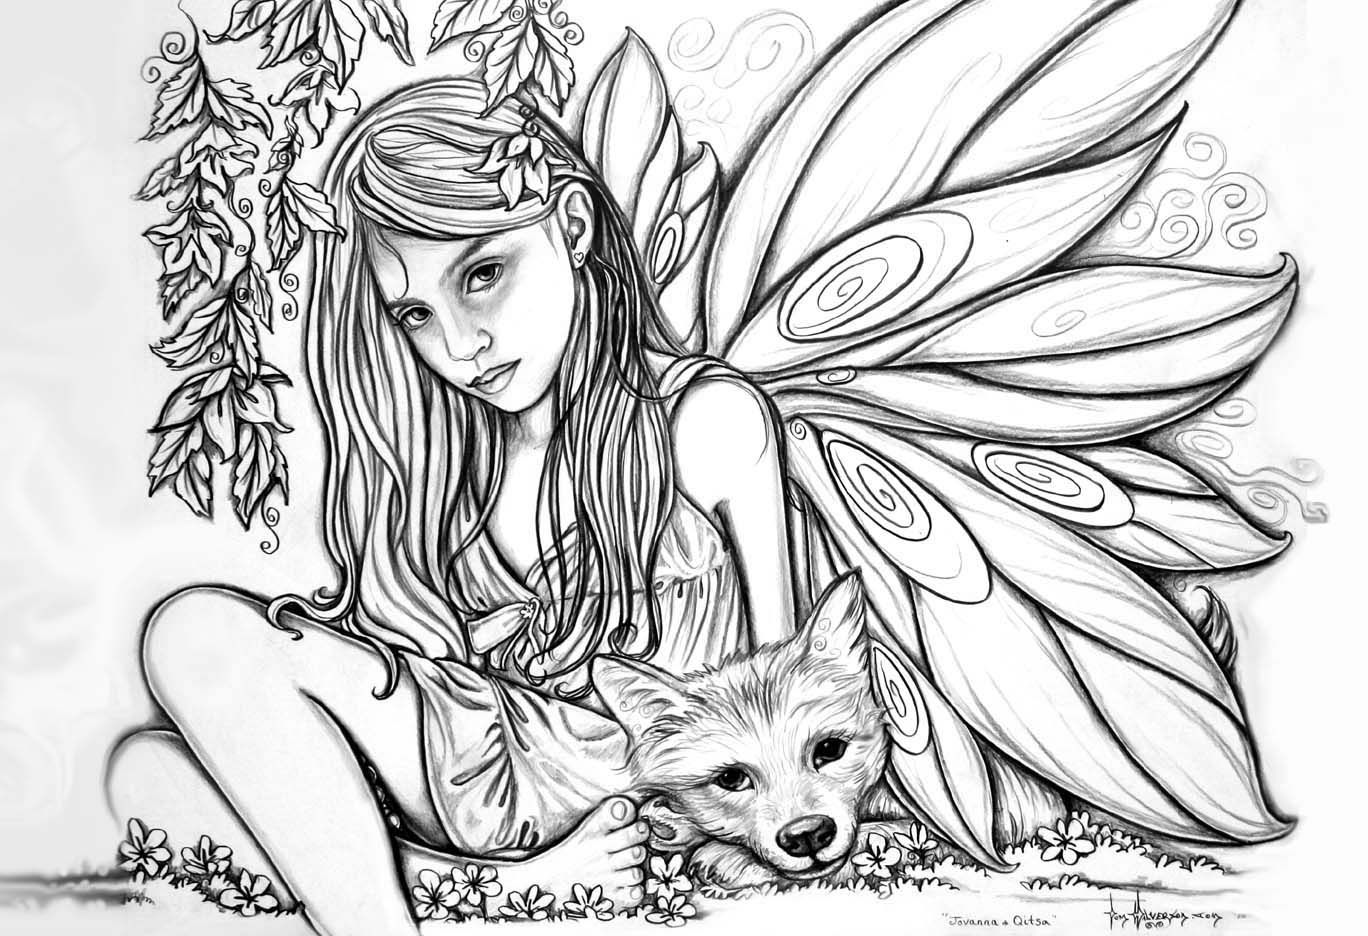 25 best colouring pages images on Pinterest | Coloring books ...